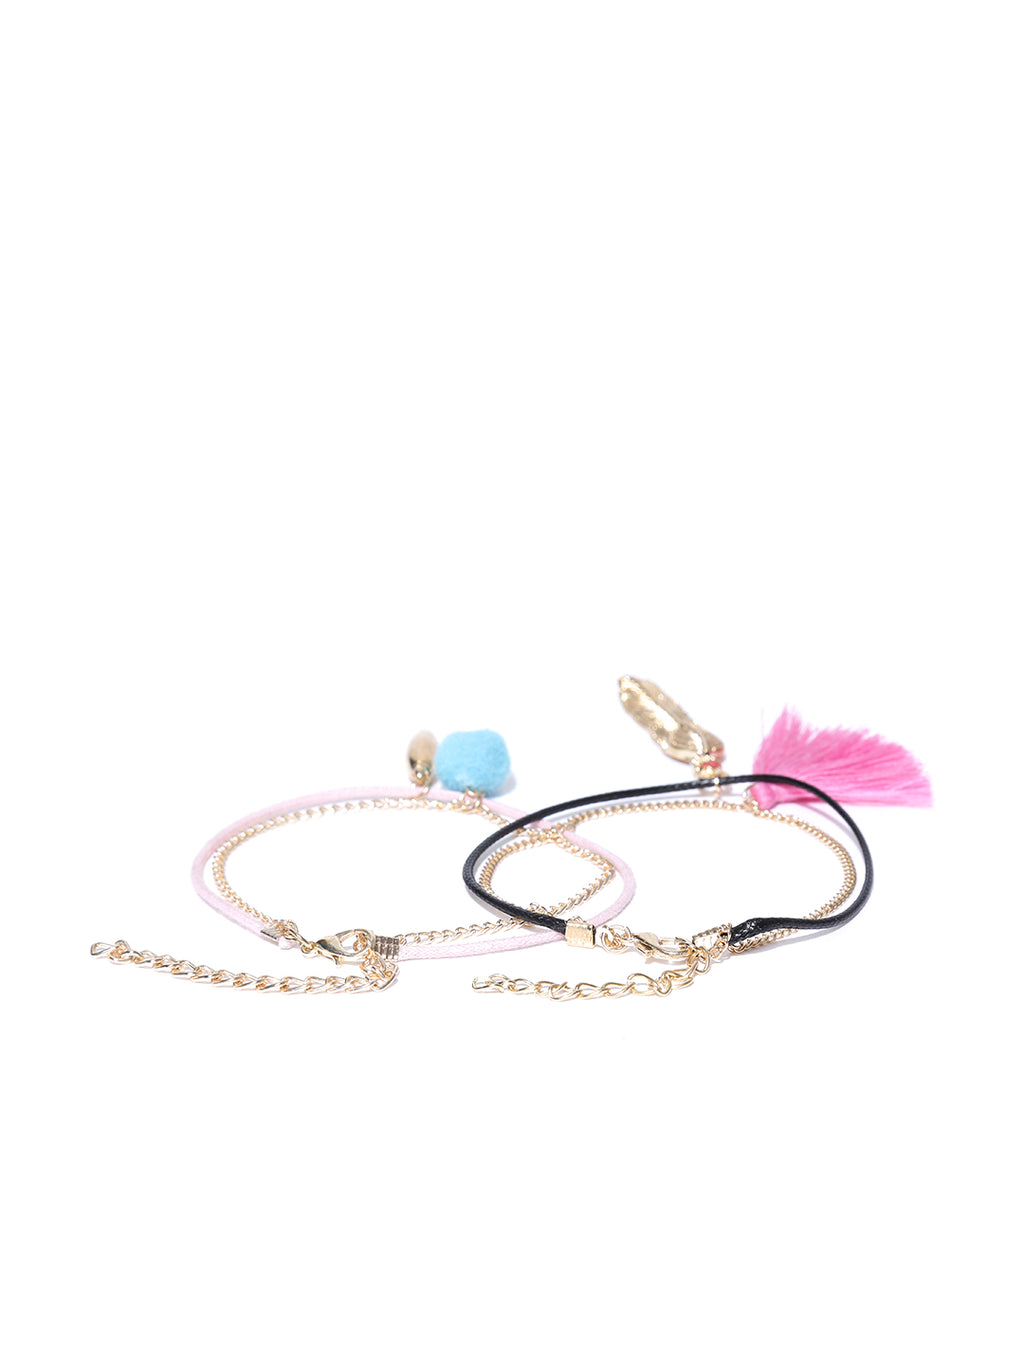 Set of 2 charm anklets